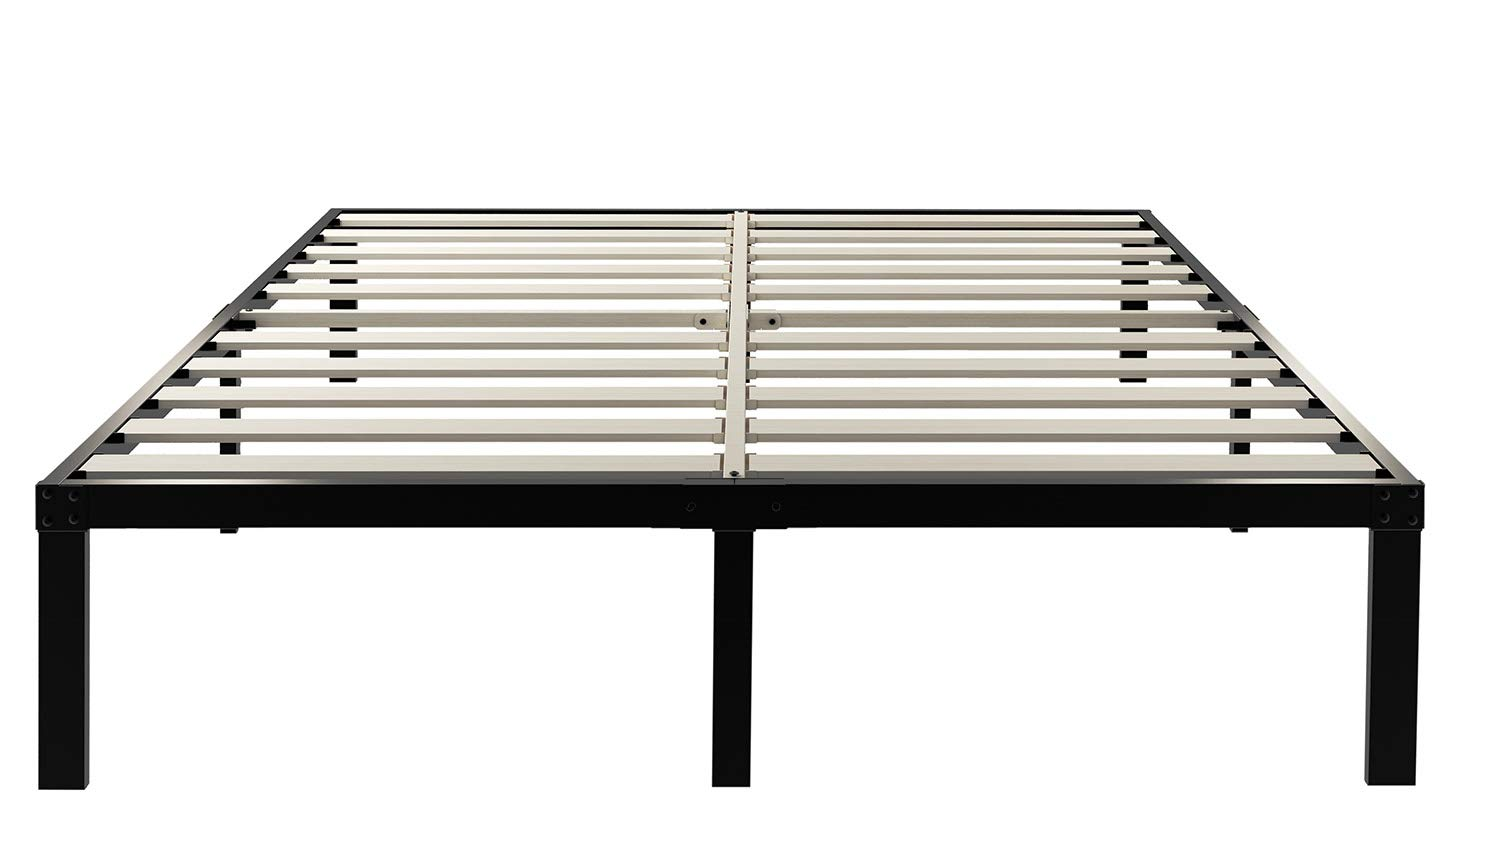 ZIYOO 3500lbs Heavy Duty, 14 Inch Wooden Slat, Reinforced Platform Bed Frame Strengthen Support Mattress Foundation, Easy Assembly, Quiet Noise Free, No Box Spring Needed, Integrated Structure, King by ZIYOO